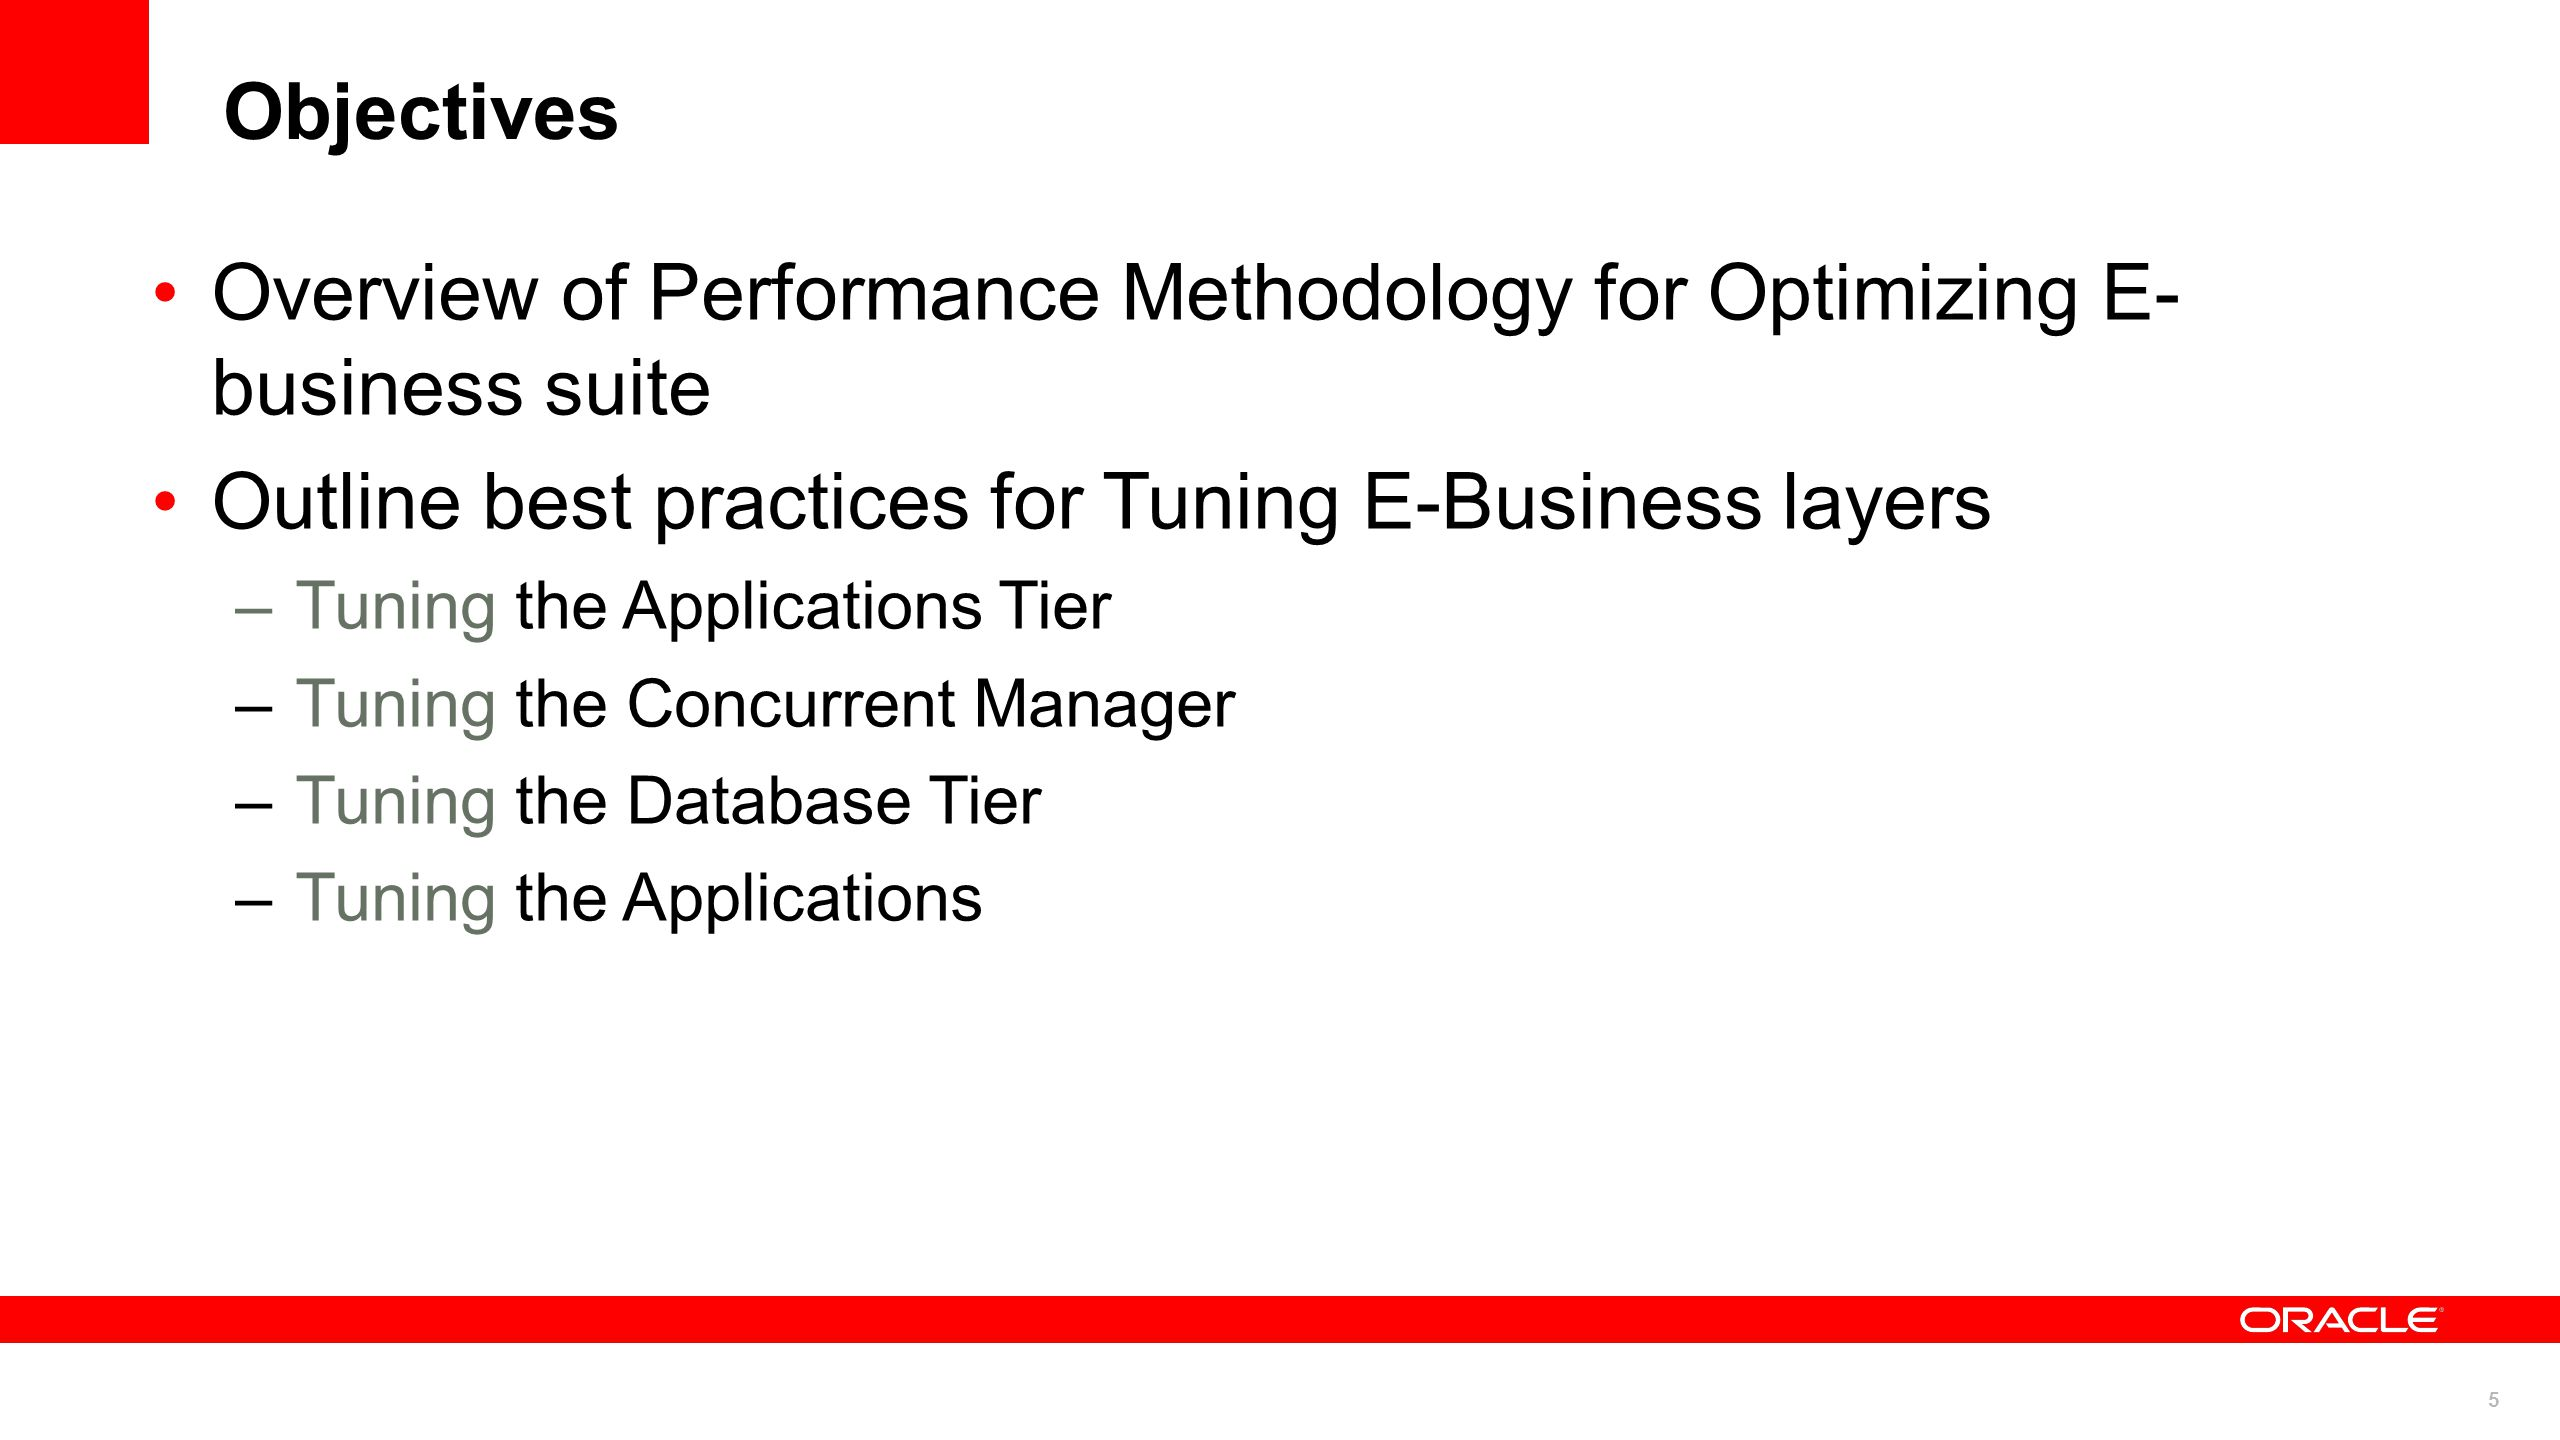 66 Tuning the Applications MyOracleSuport note Recommended Performance Patches for the Oracle E-Business Suite, 244040.1 –Recommended performance patches for all the modules and tech.